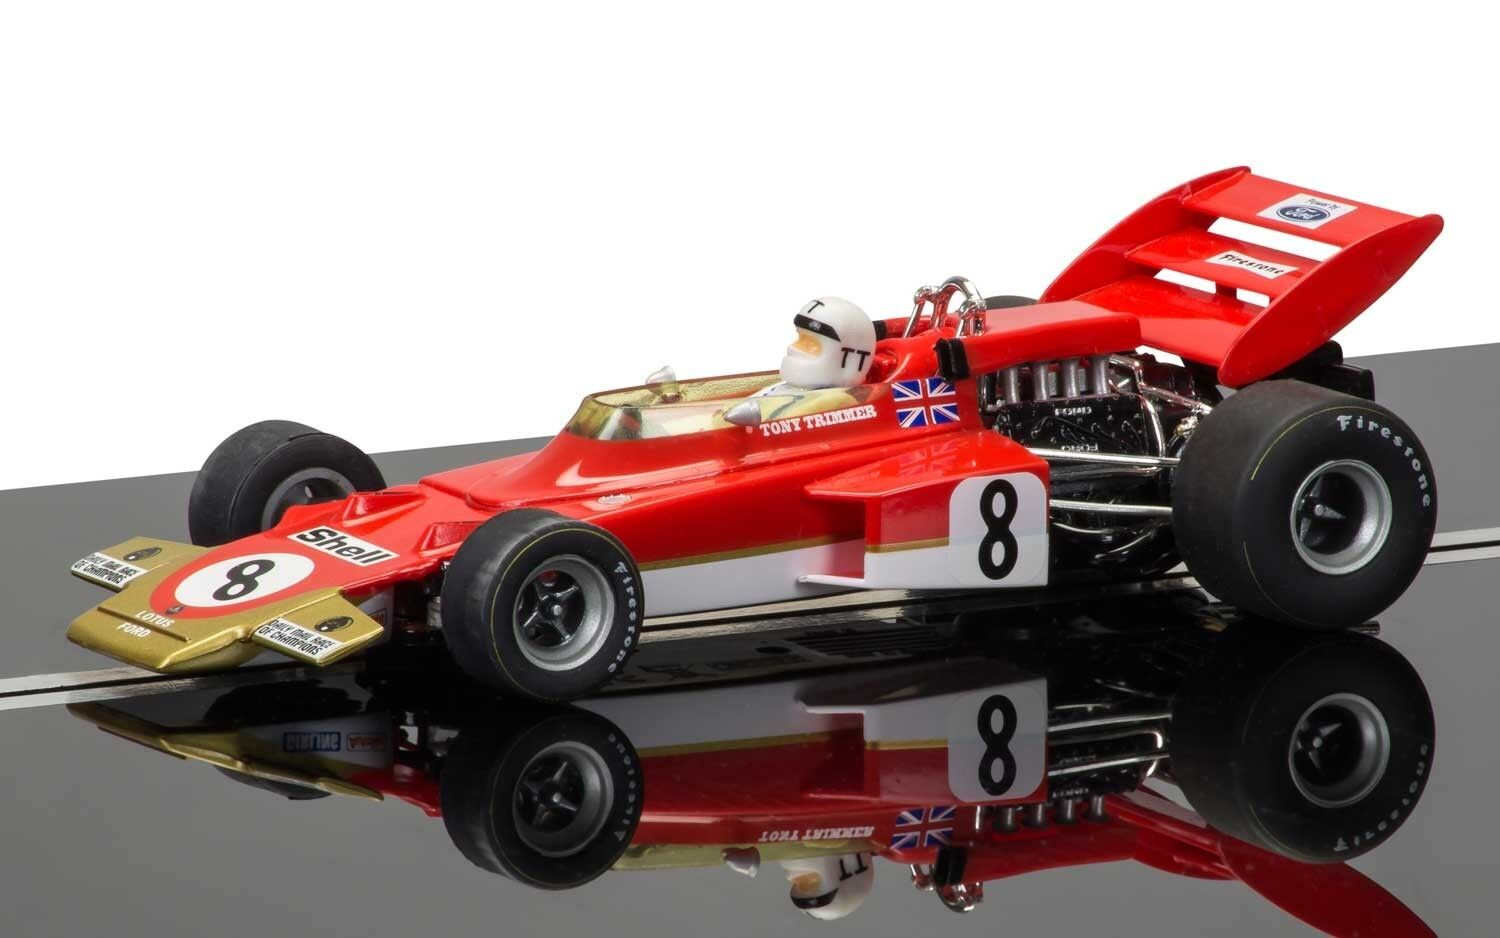 C3657a Scalextric Legends Team Lotus 72, new boxed